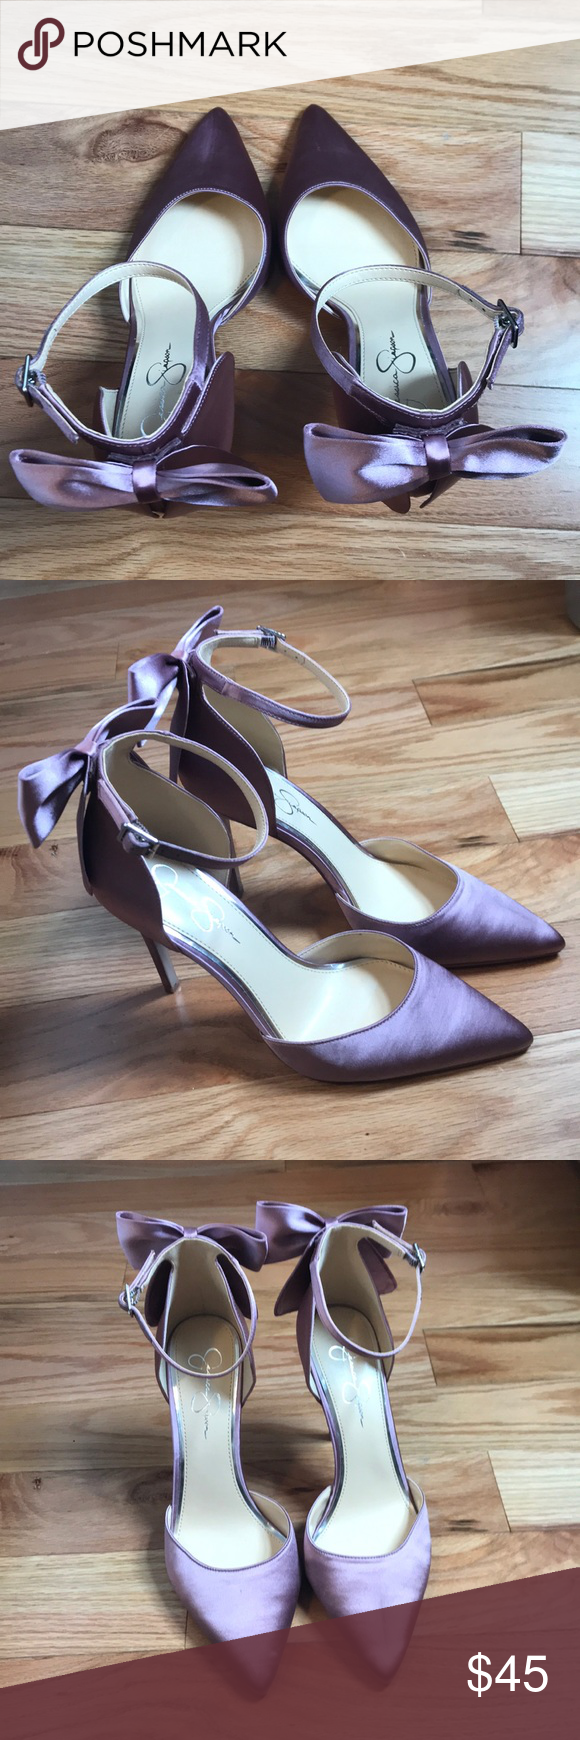 "0888863fa76 ... pumps with cute bow detail on the heel. Adjustable ankle strap and  satin upper. 4in heel stiletto and color is called ""light pink"" but looks  like mauve."